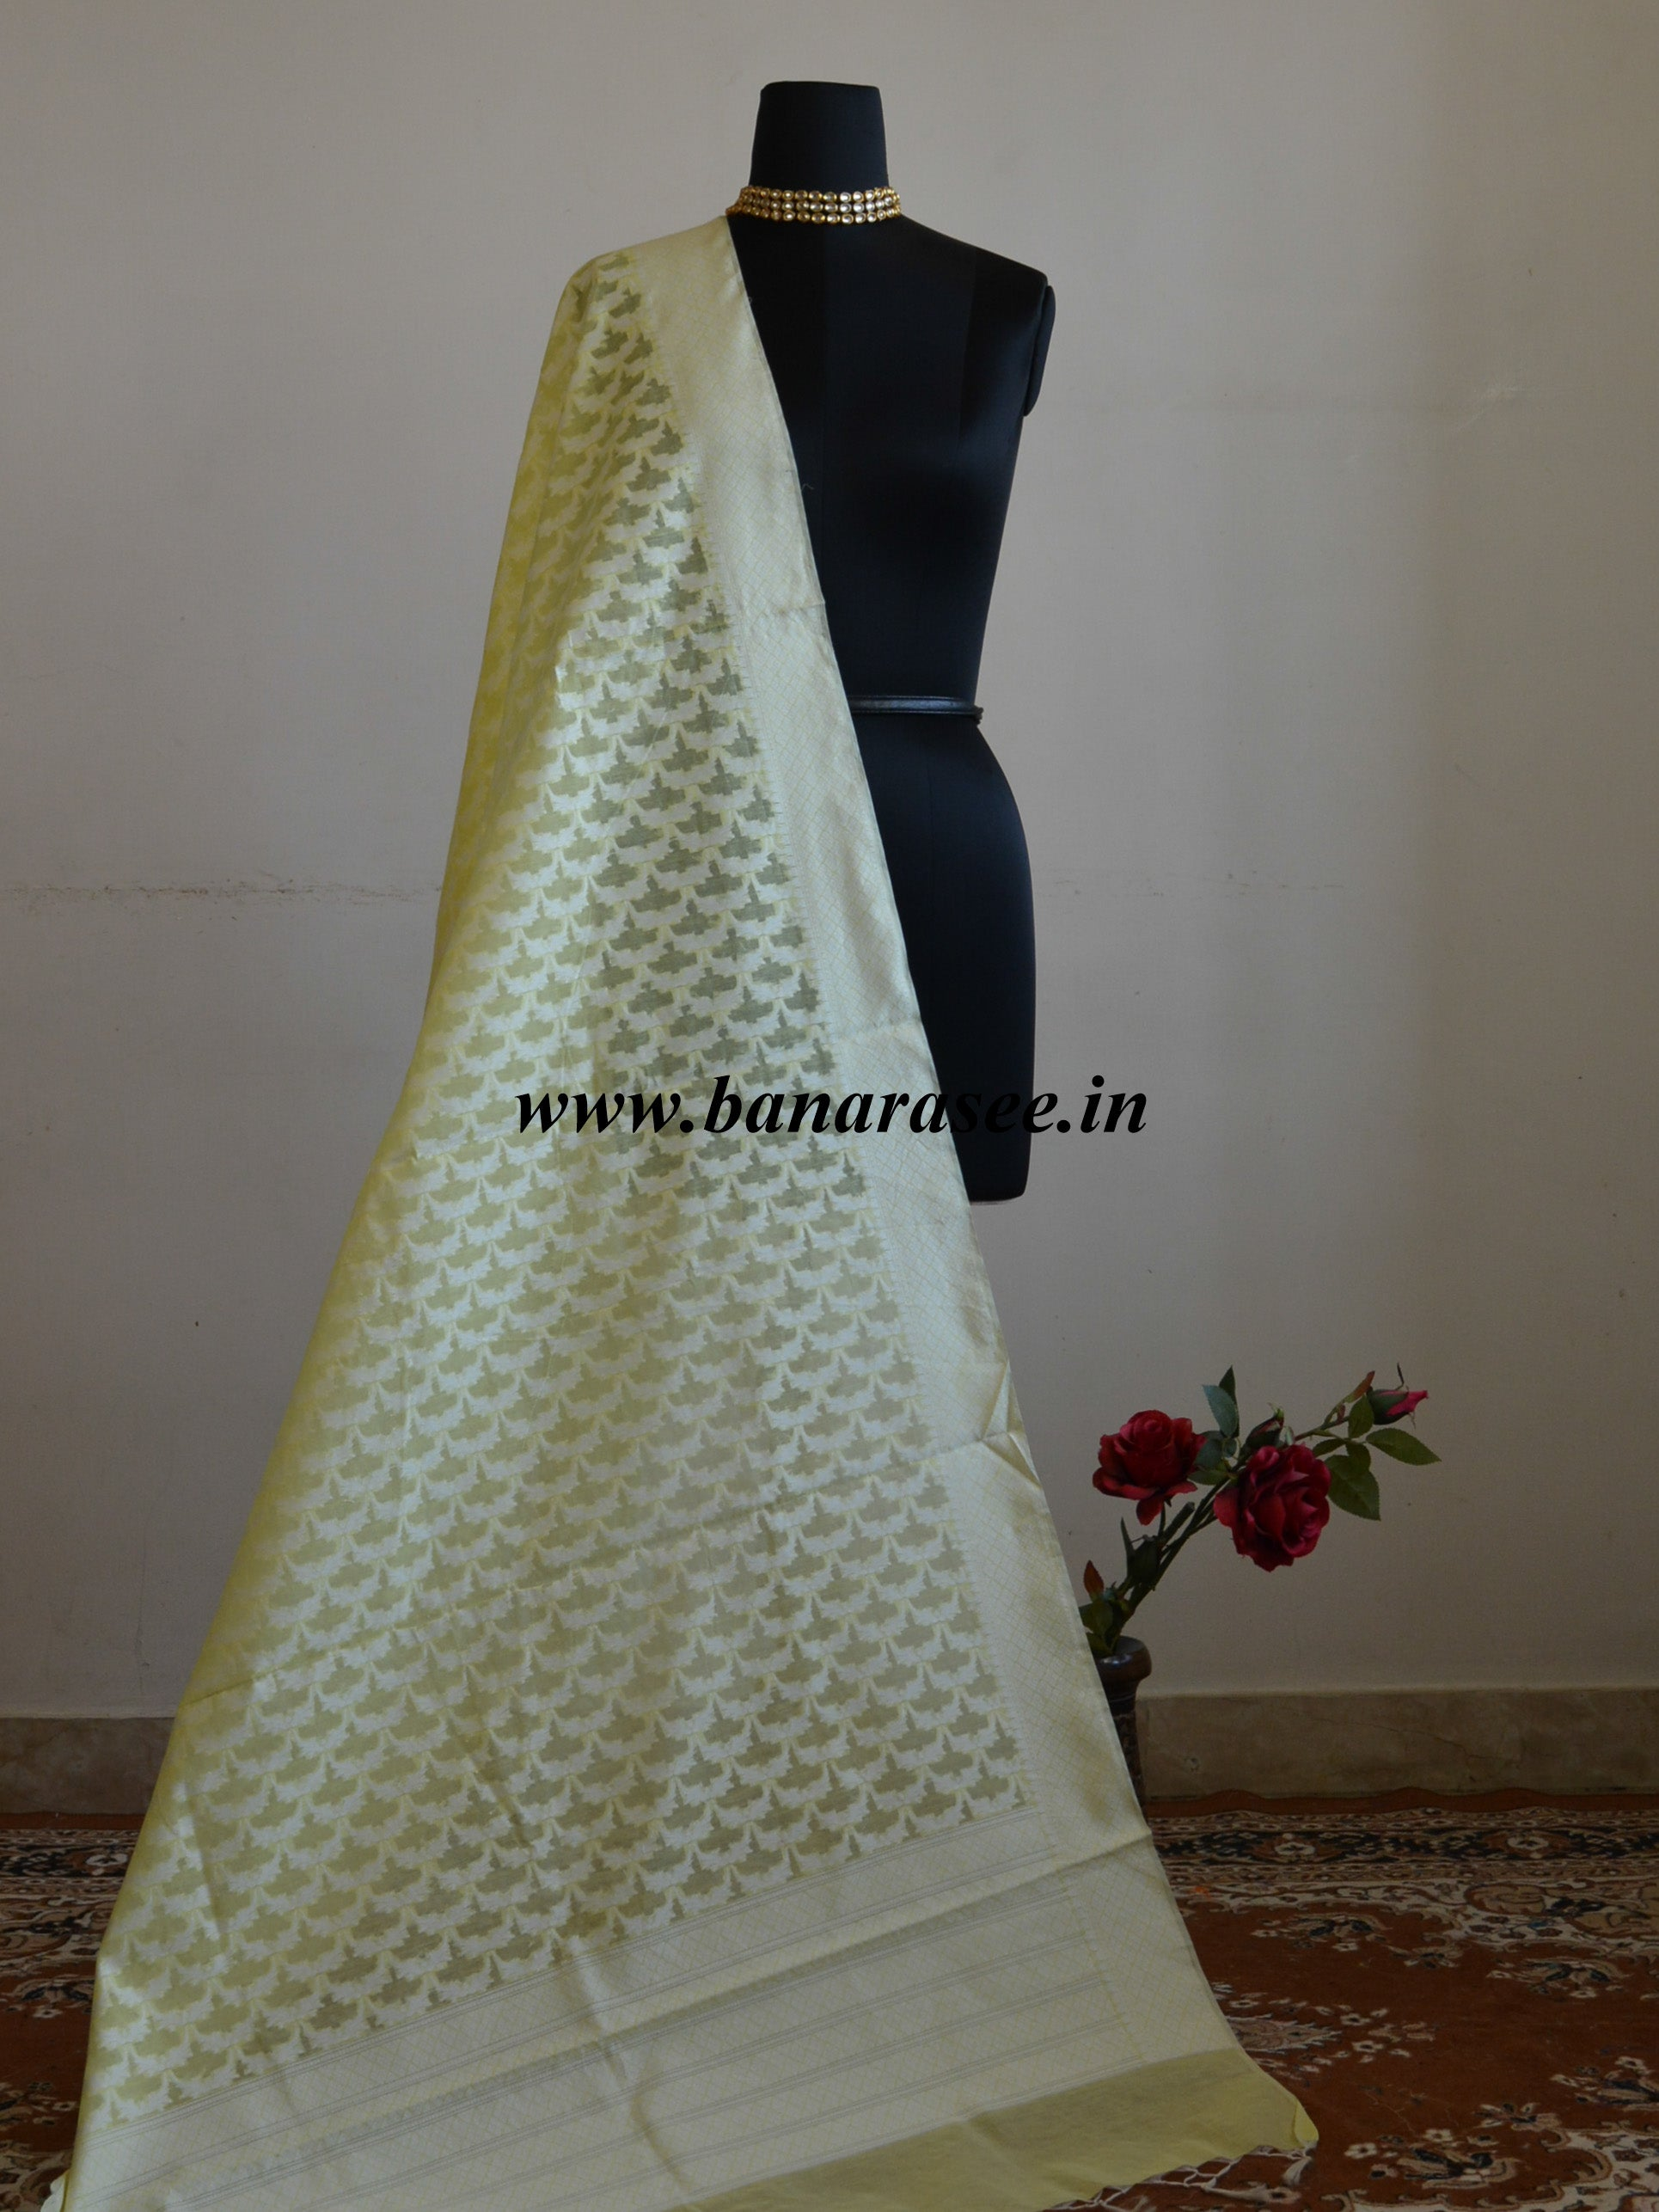 Banarasee Handloom Soft Cotton Resham Jaal Dupatta-Lemon Yellow